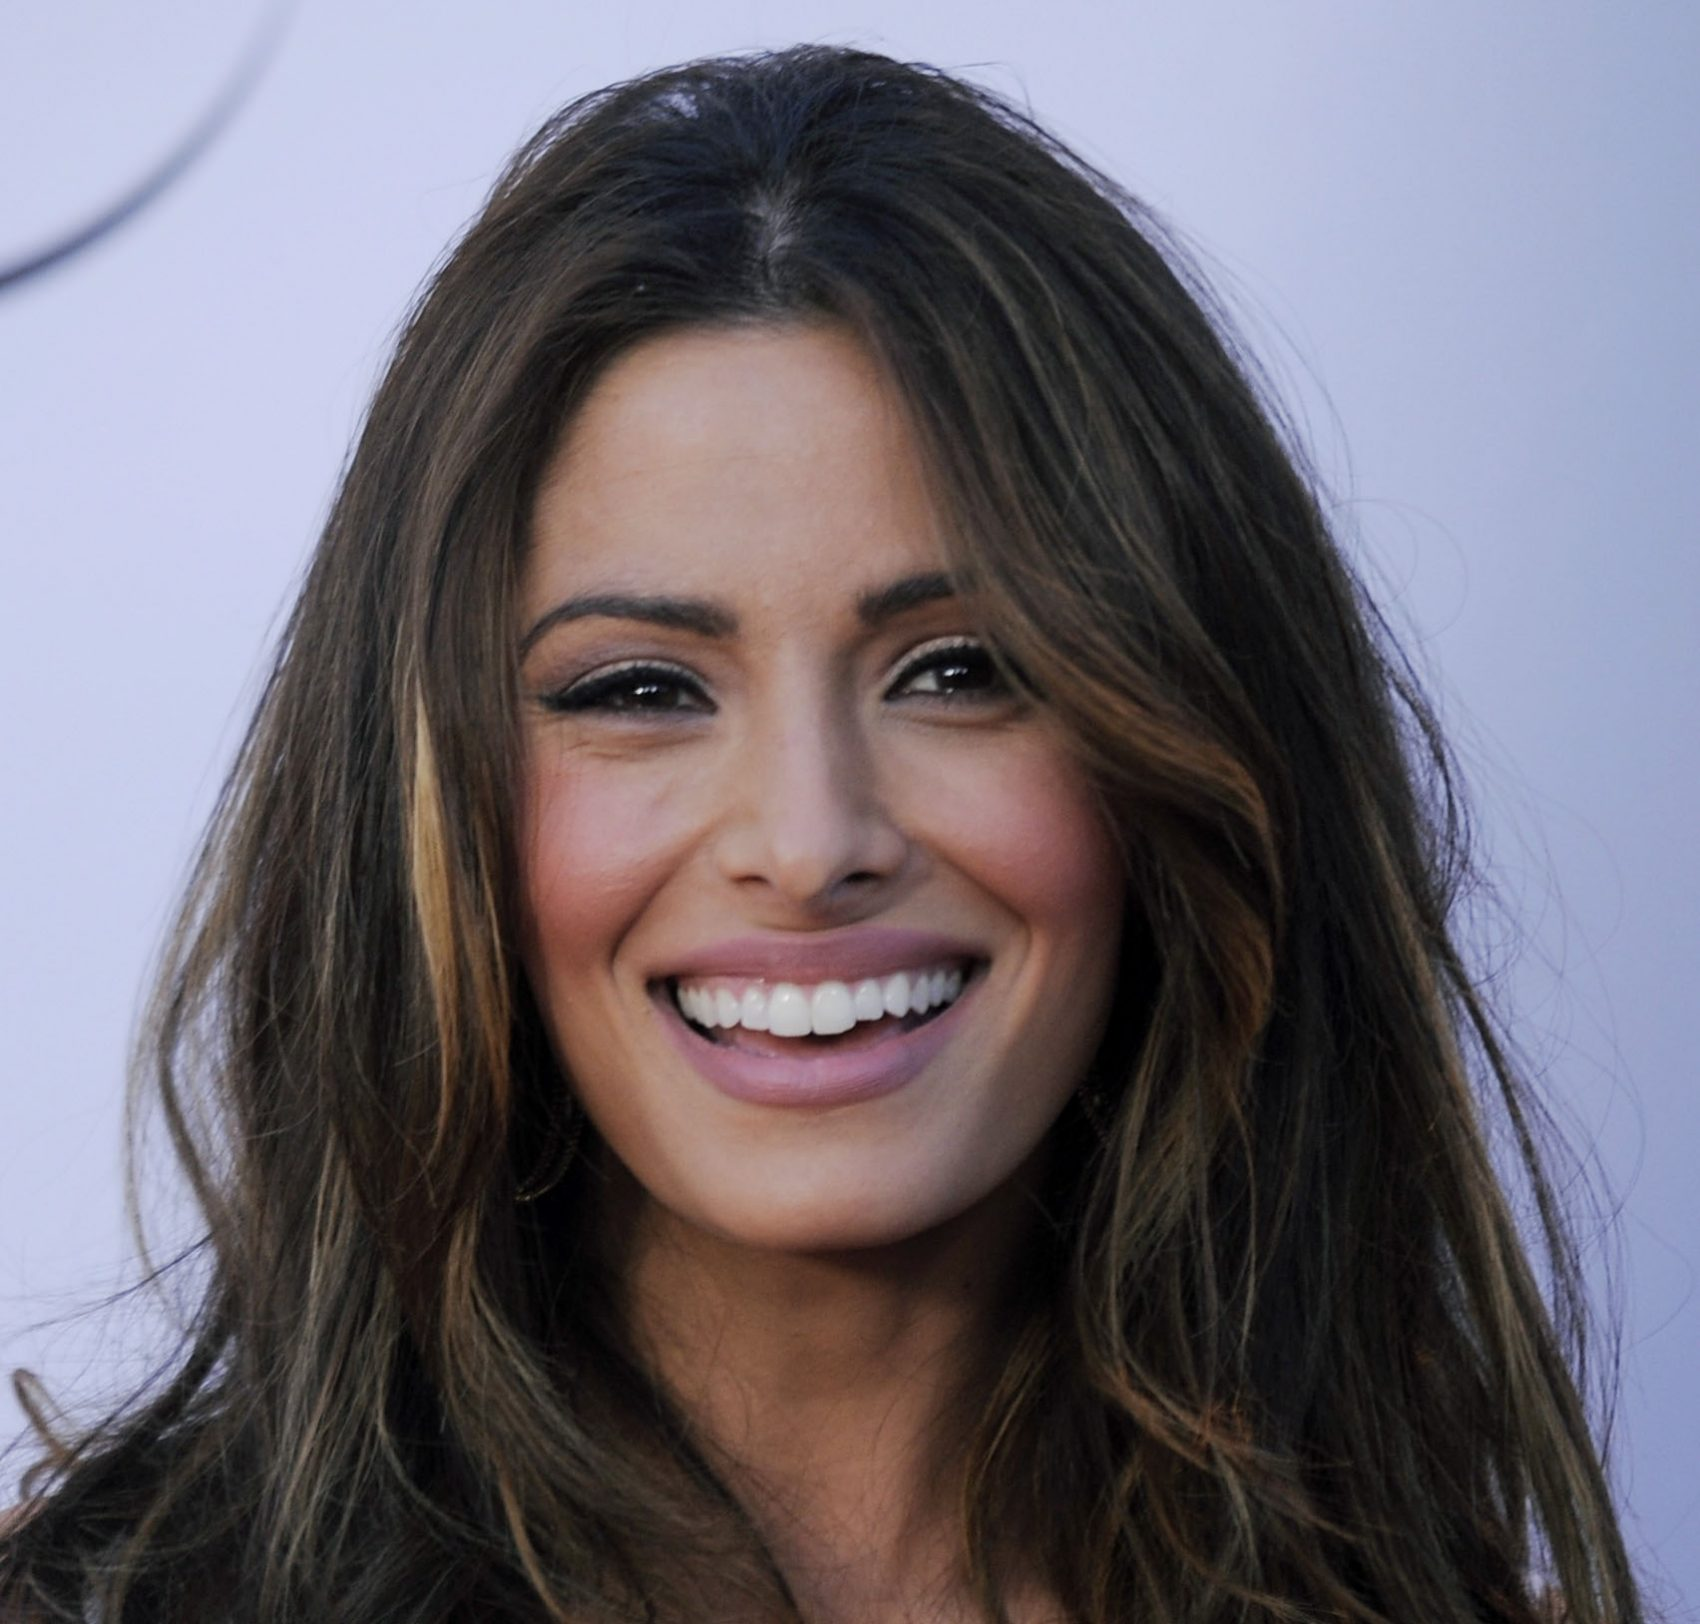 https://d279m997dpfwgl.cloudfront.net/wp/2018/06/Sarah-Shahi_Headshot.jpg